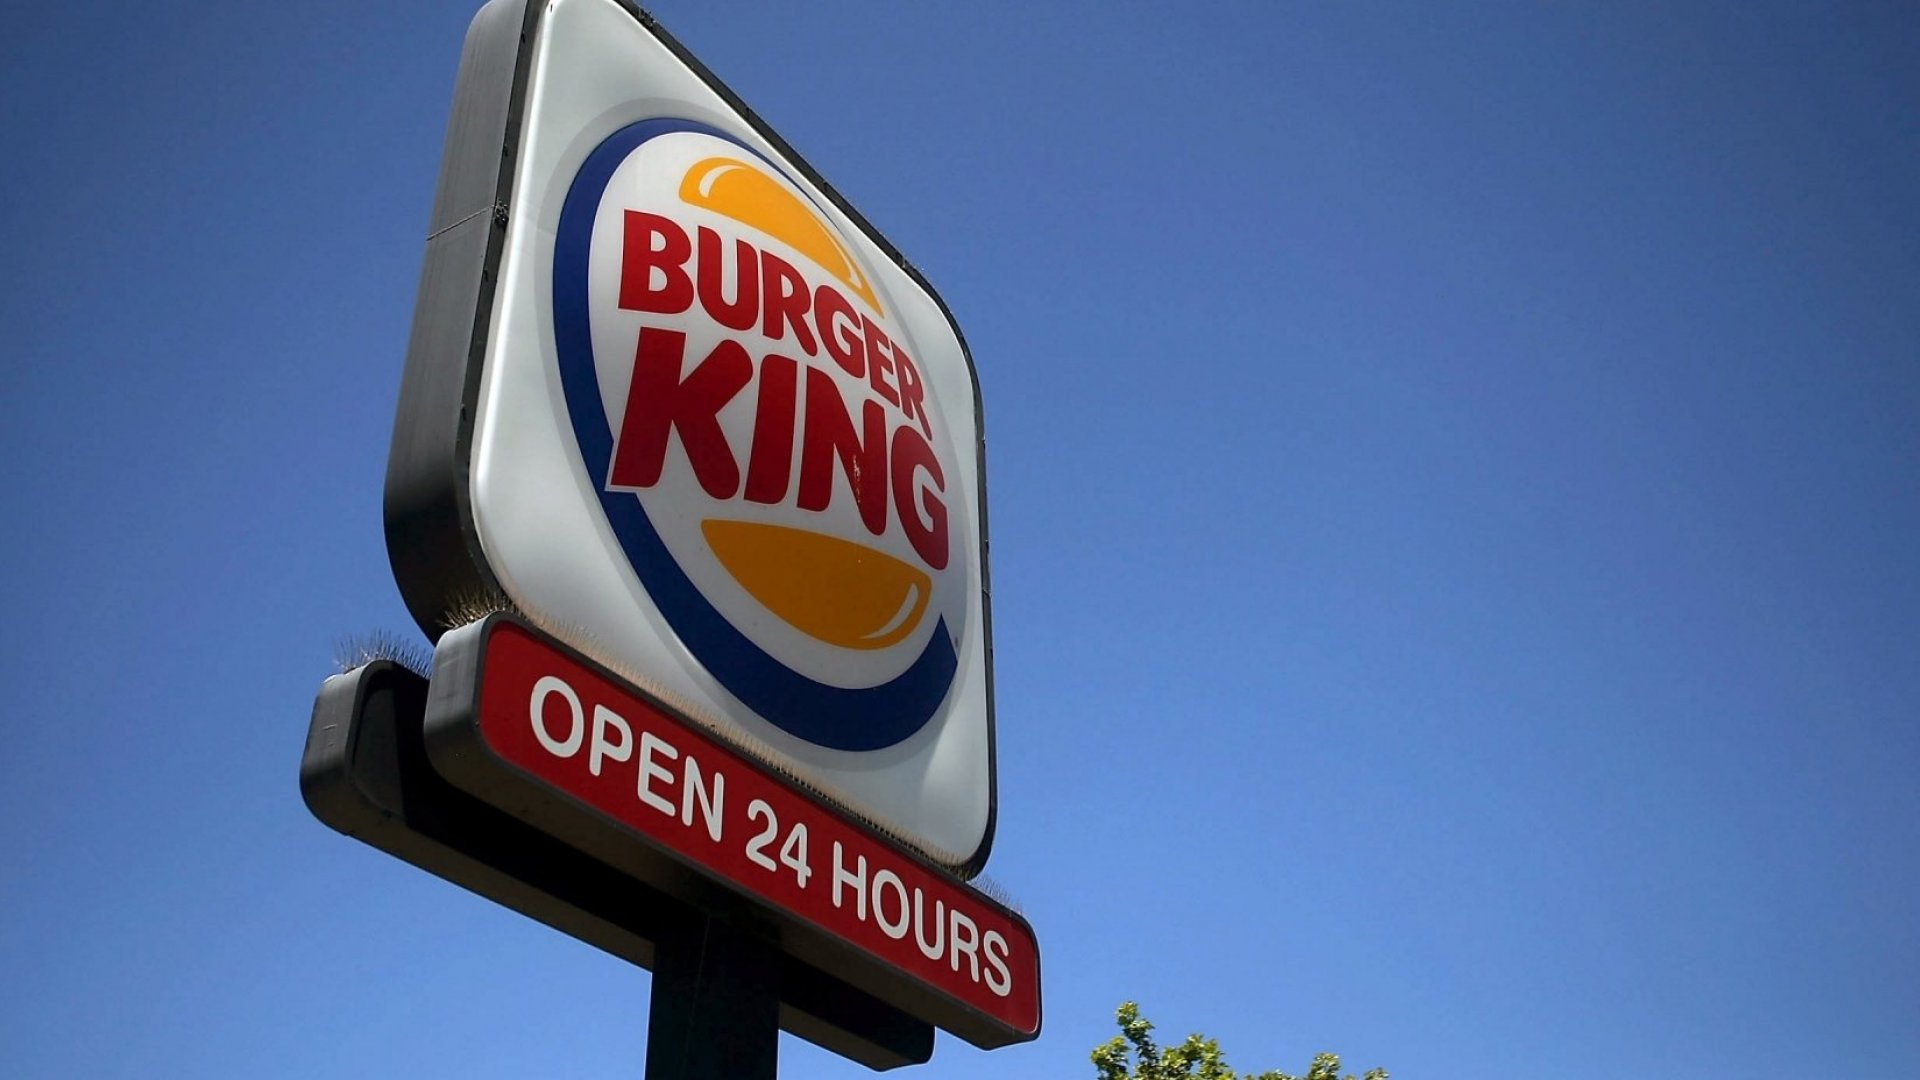 This Burger King Employee Was Shamed on Social Media. Now Her Story Has People Truly Stunned